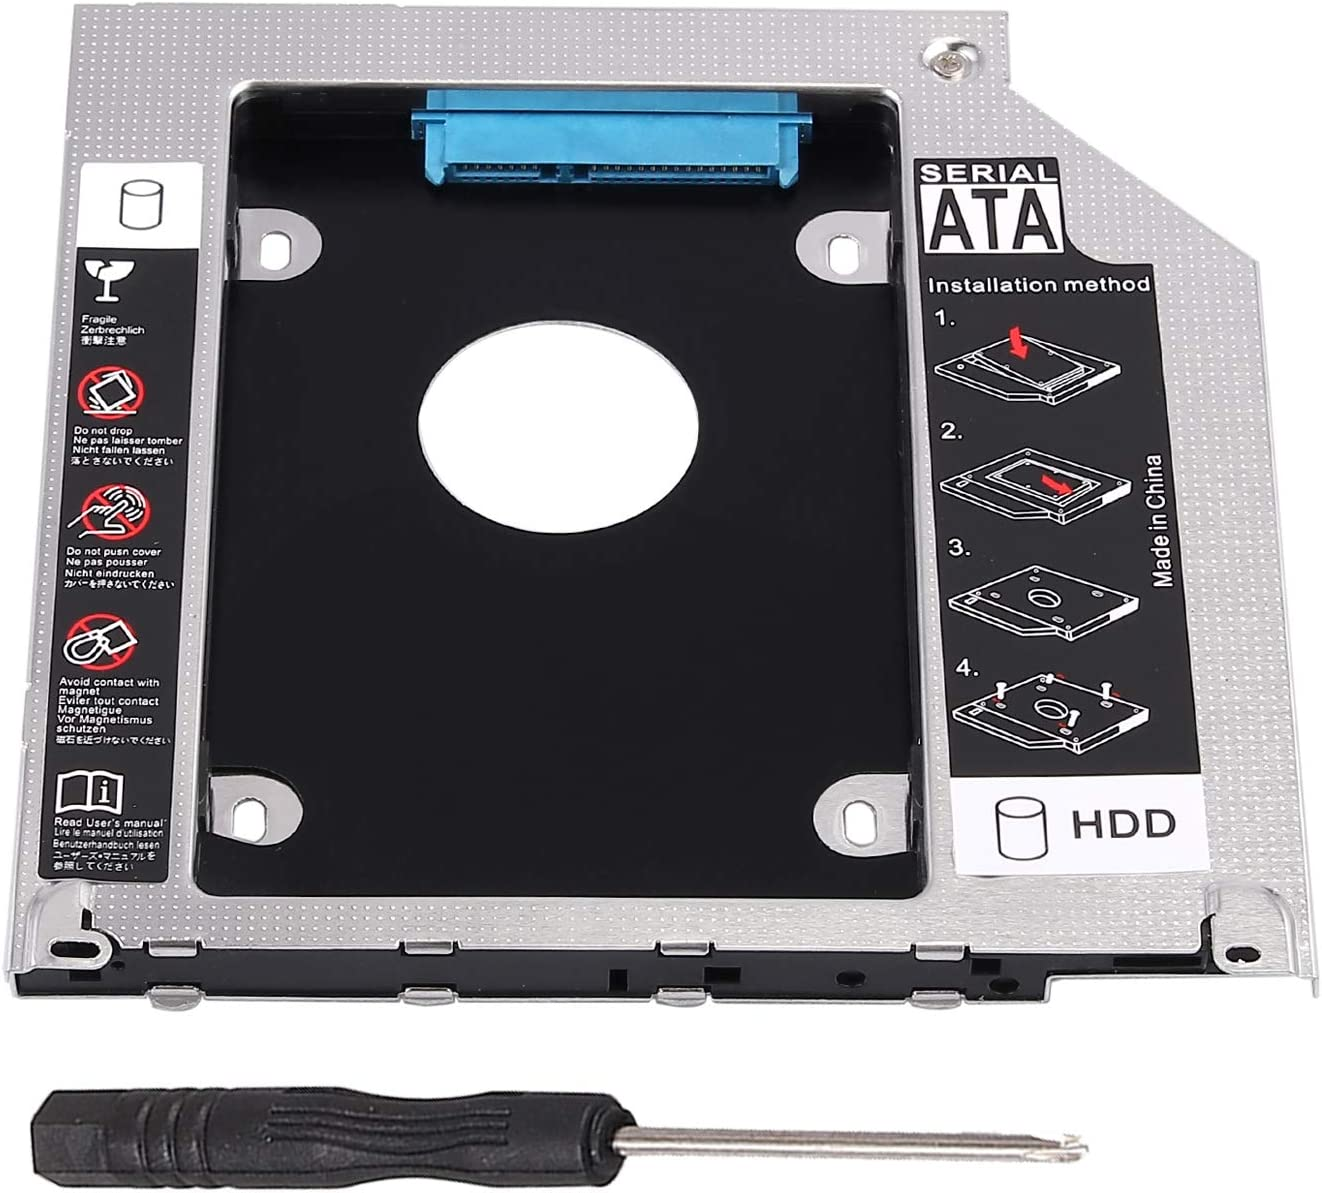 "eSynic Hard Drive Caddy Tray 2.5"" 2nd HDD SDD Kit 9.5mm SATA HDD SSD Adapter Optical Bay Drive Slot for MacBook Pro Unibody 13 15 17 SuperDrive DVD Drive Replacement Only"